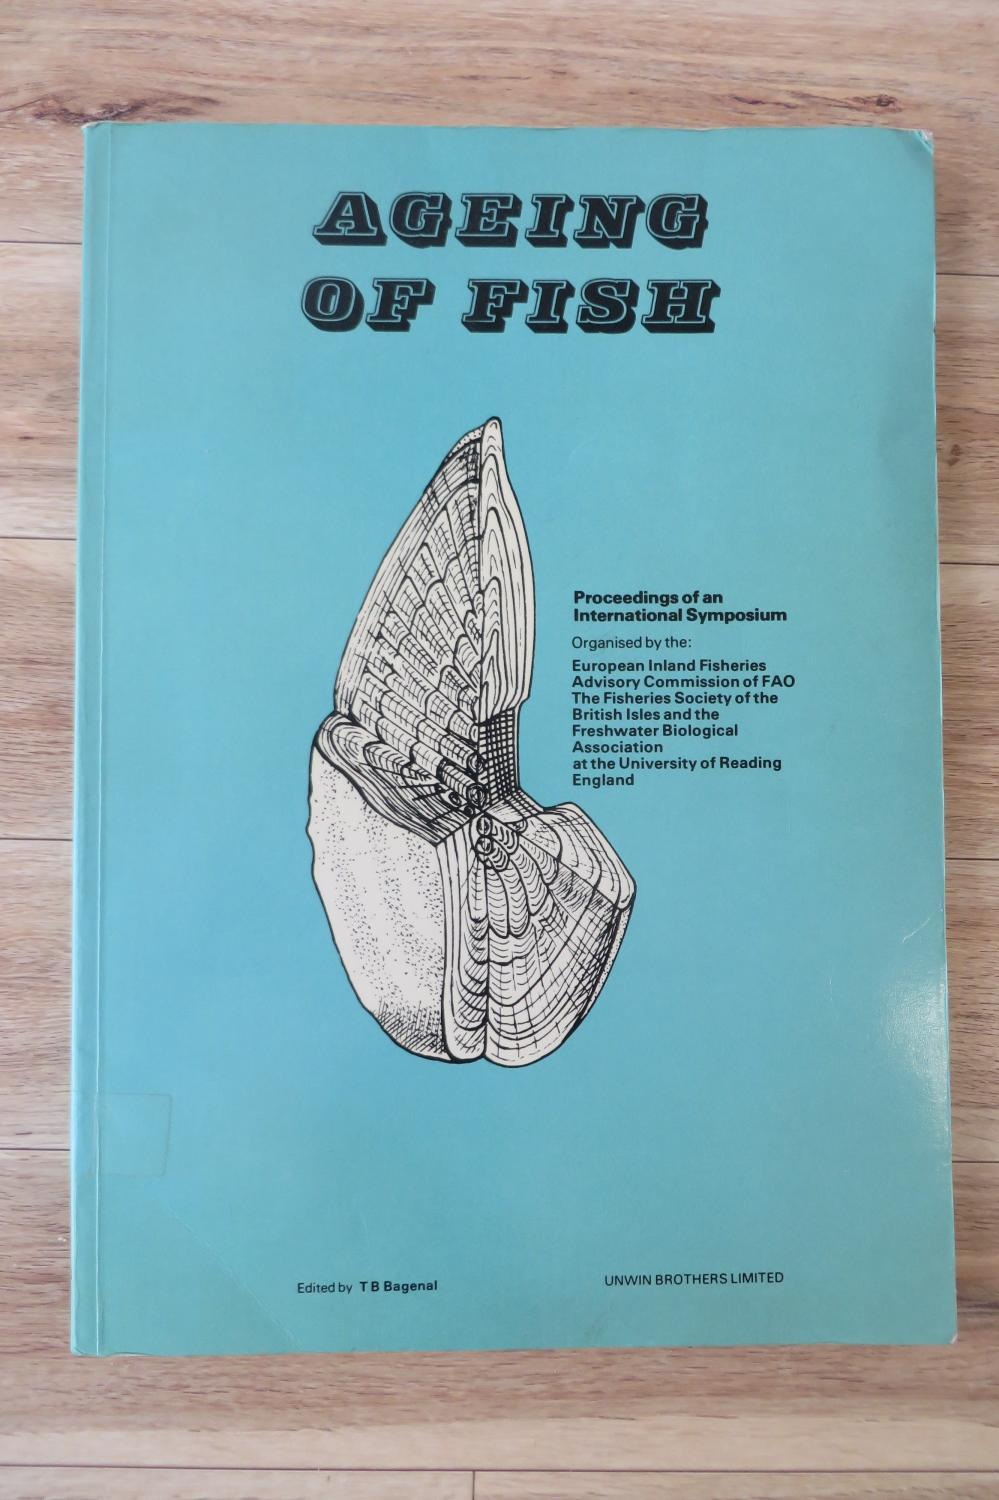 The Proceedings of an International Symposium on the Ageing of Fish